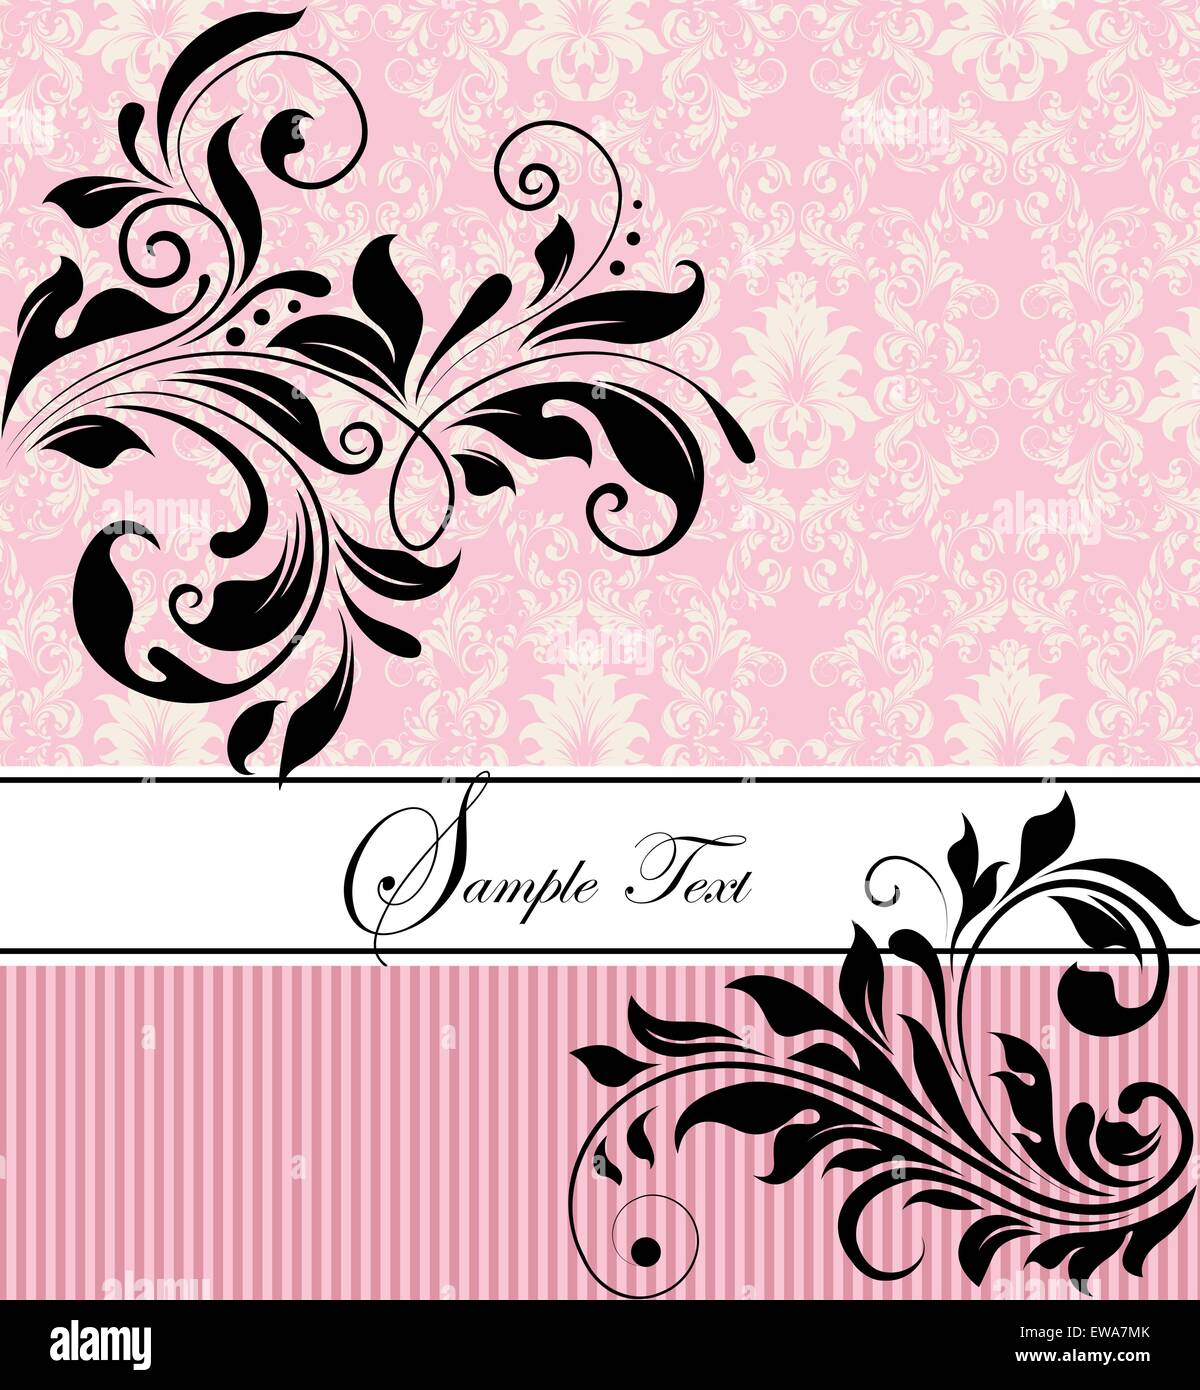 Vintage invitation card with ornate elegant retro abstract floral stock vector vintage invitation card with ornate elegant retro abstract floral design black flowers and leaves on pink and white background dhlflorist Choice Image